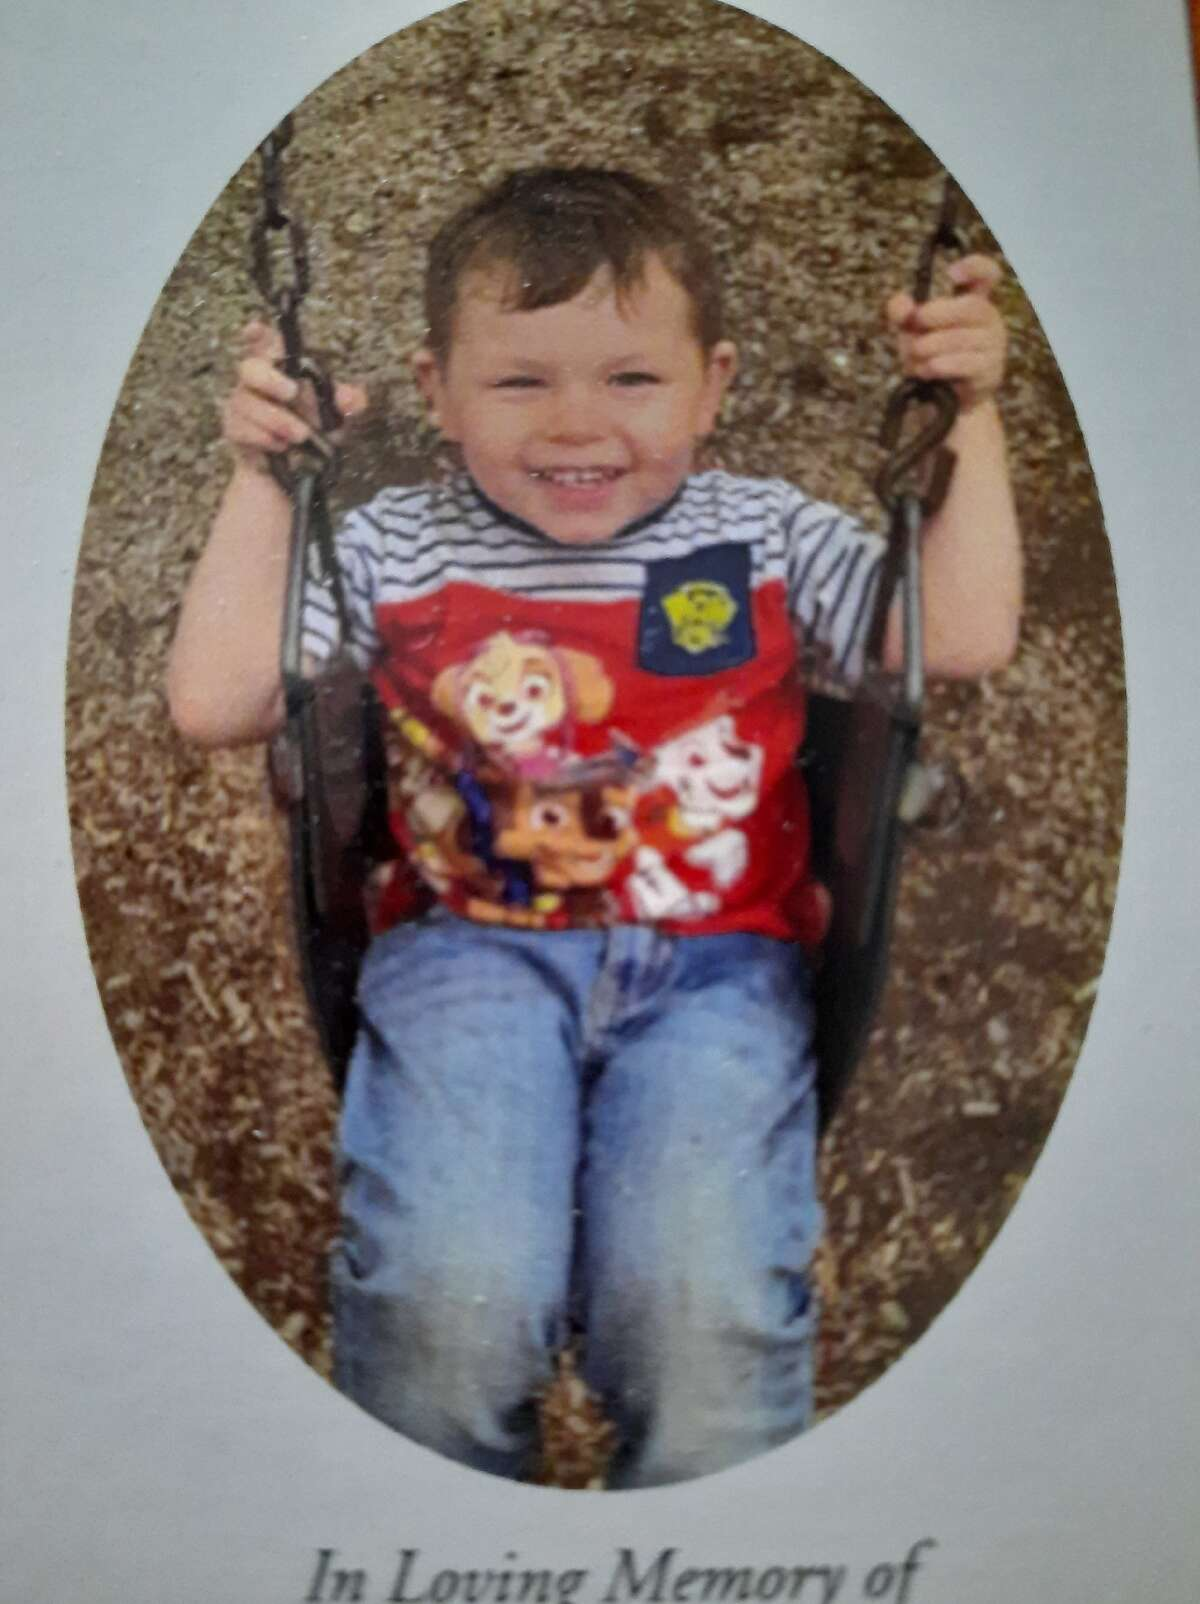 Charlie Garay, 4, died on Dec. 20, after, prosecutors said, he was abused by his foster father at a home in Rotterdam.